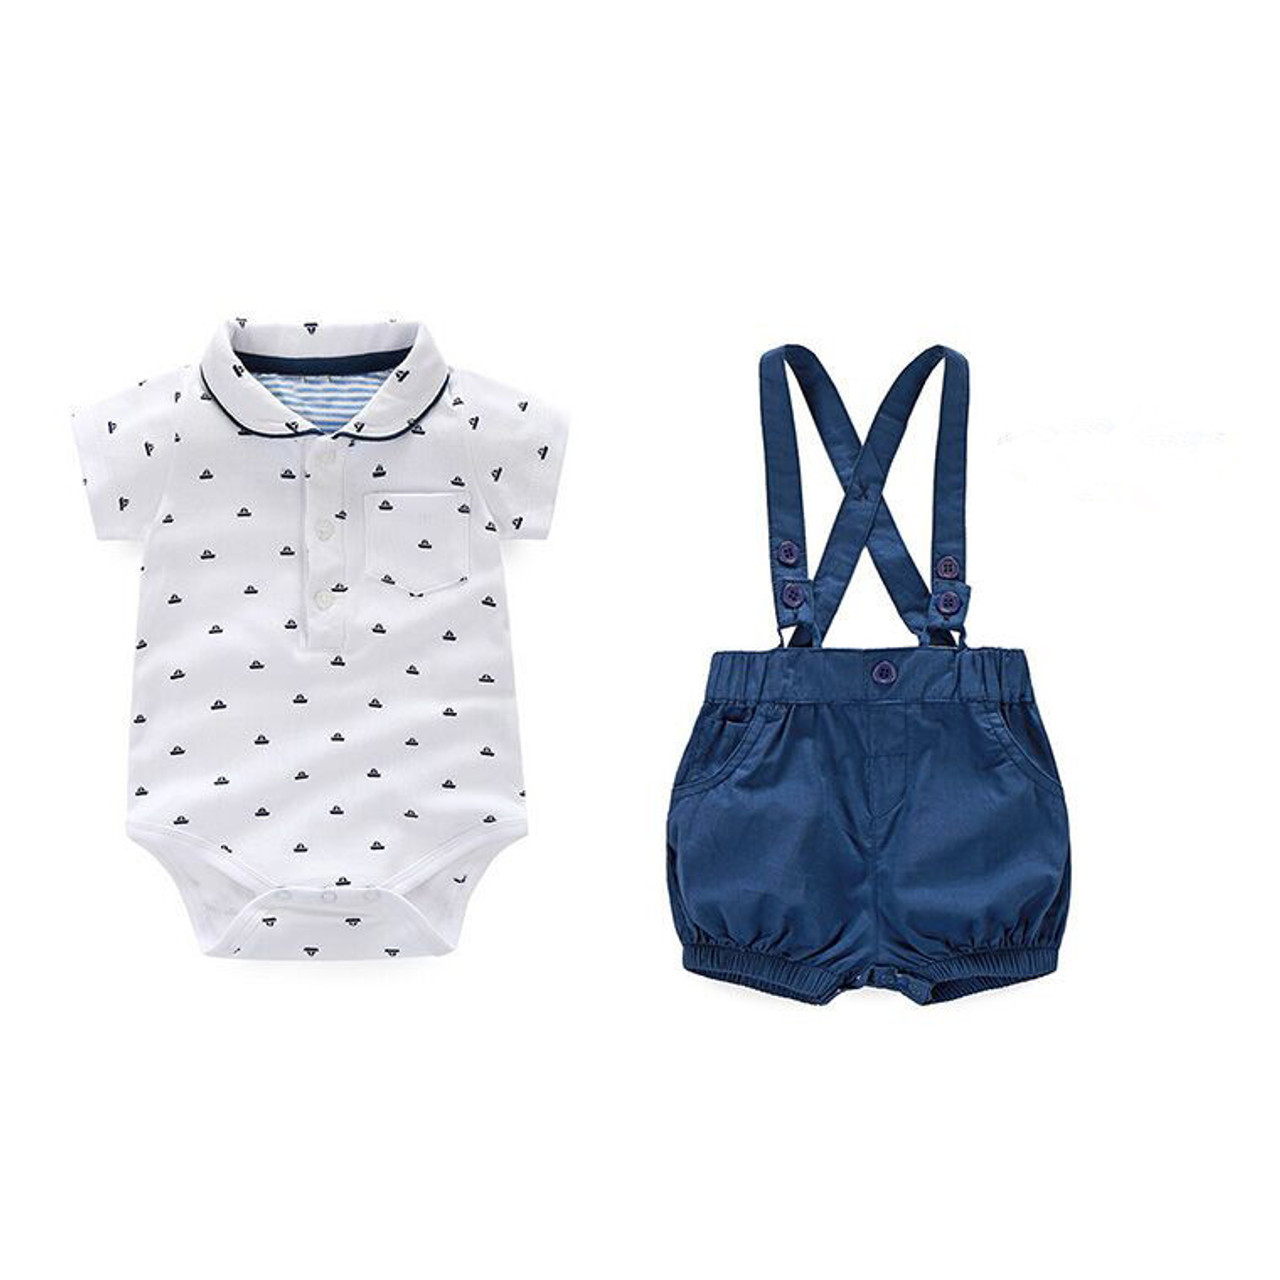 a6a1f2287 ... Newborn Baby Boy Clothes Childrens Infant Clothing Sets Kids Baby Boy  Suit gentleman clothes T- ...